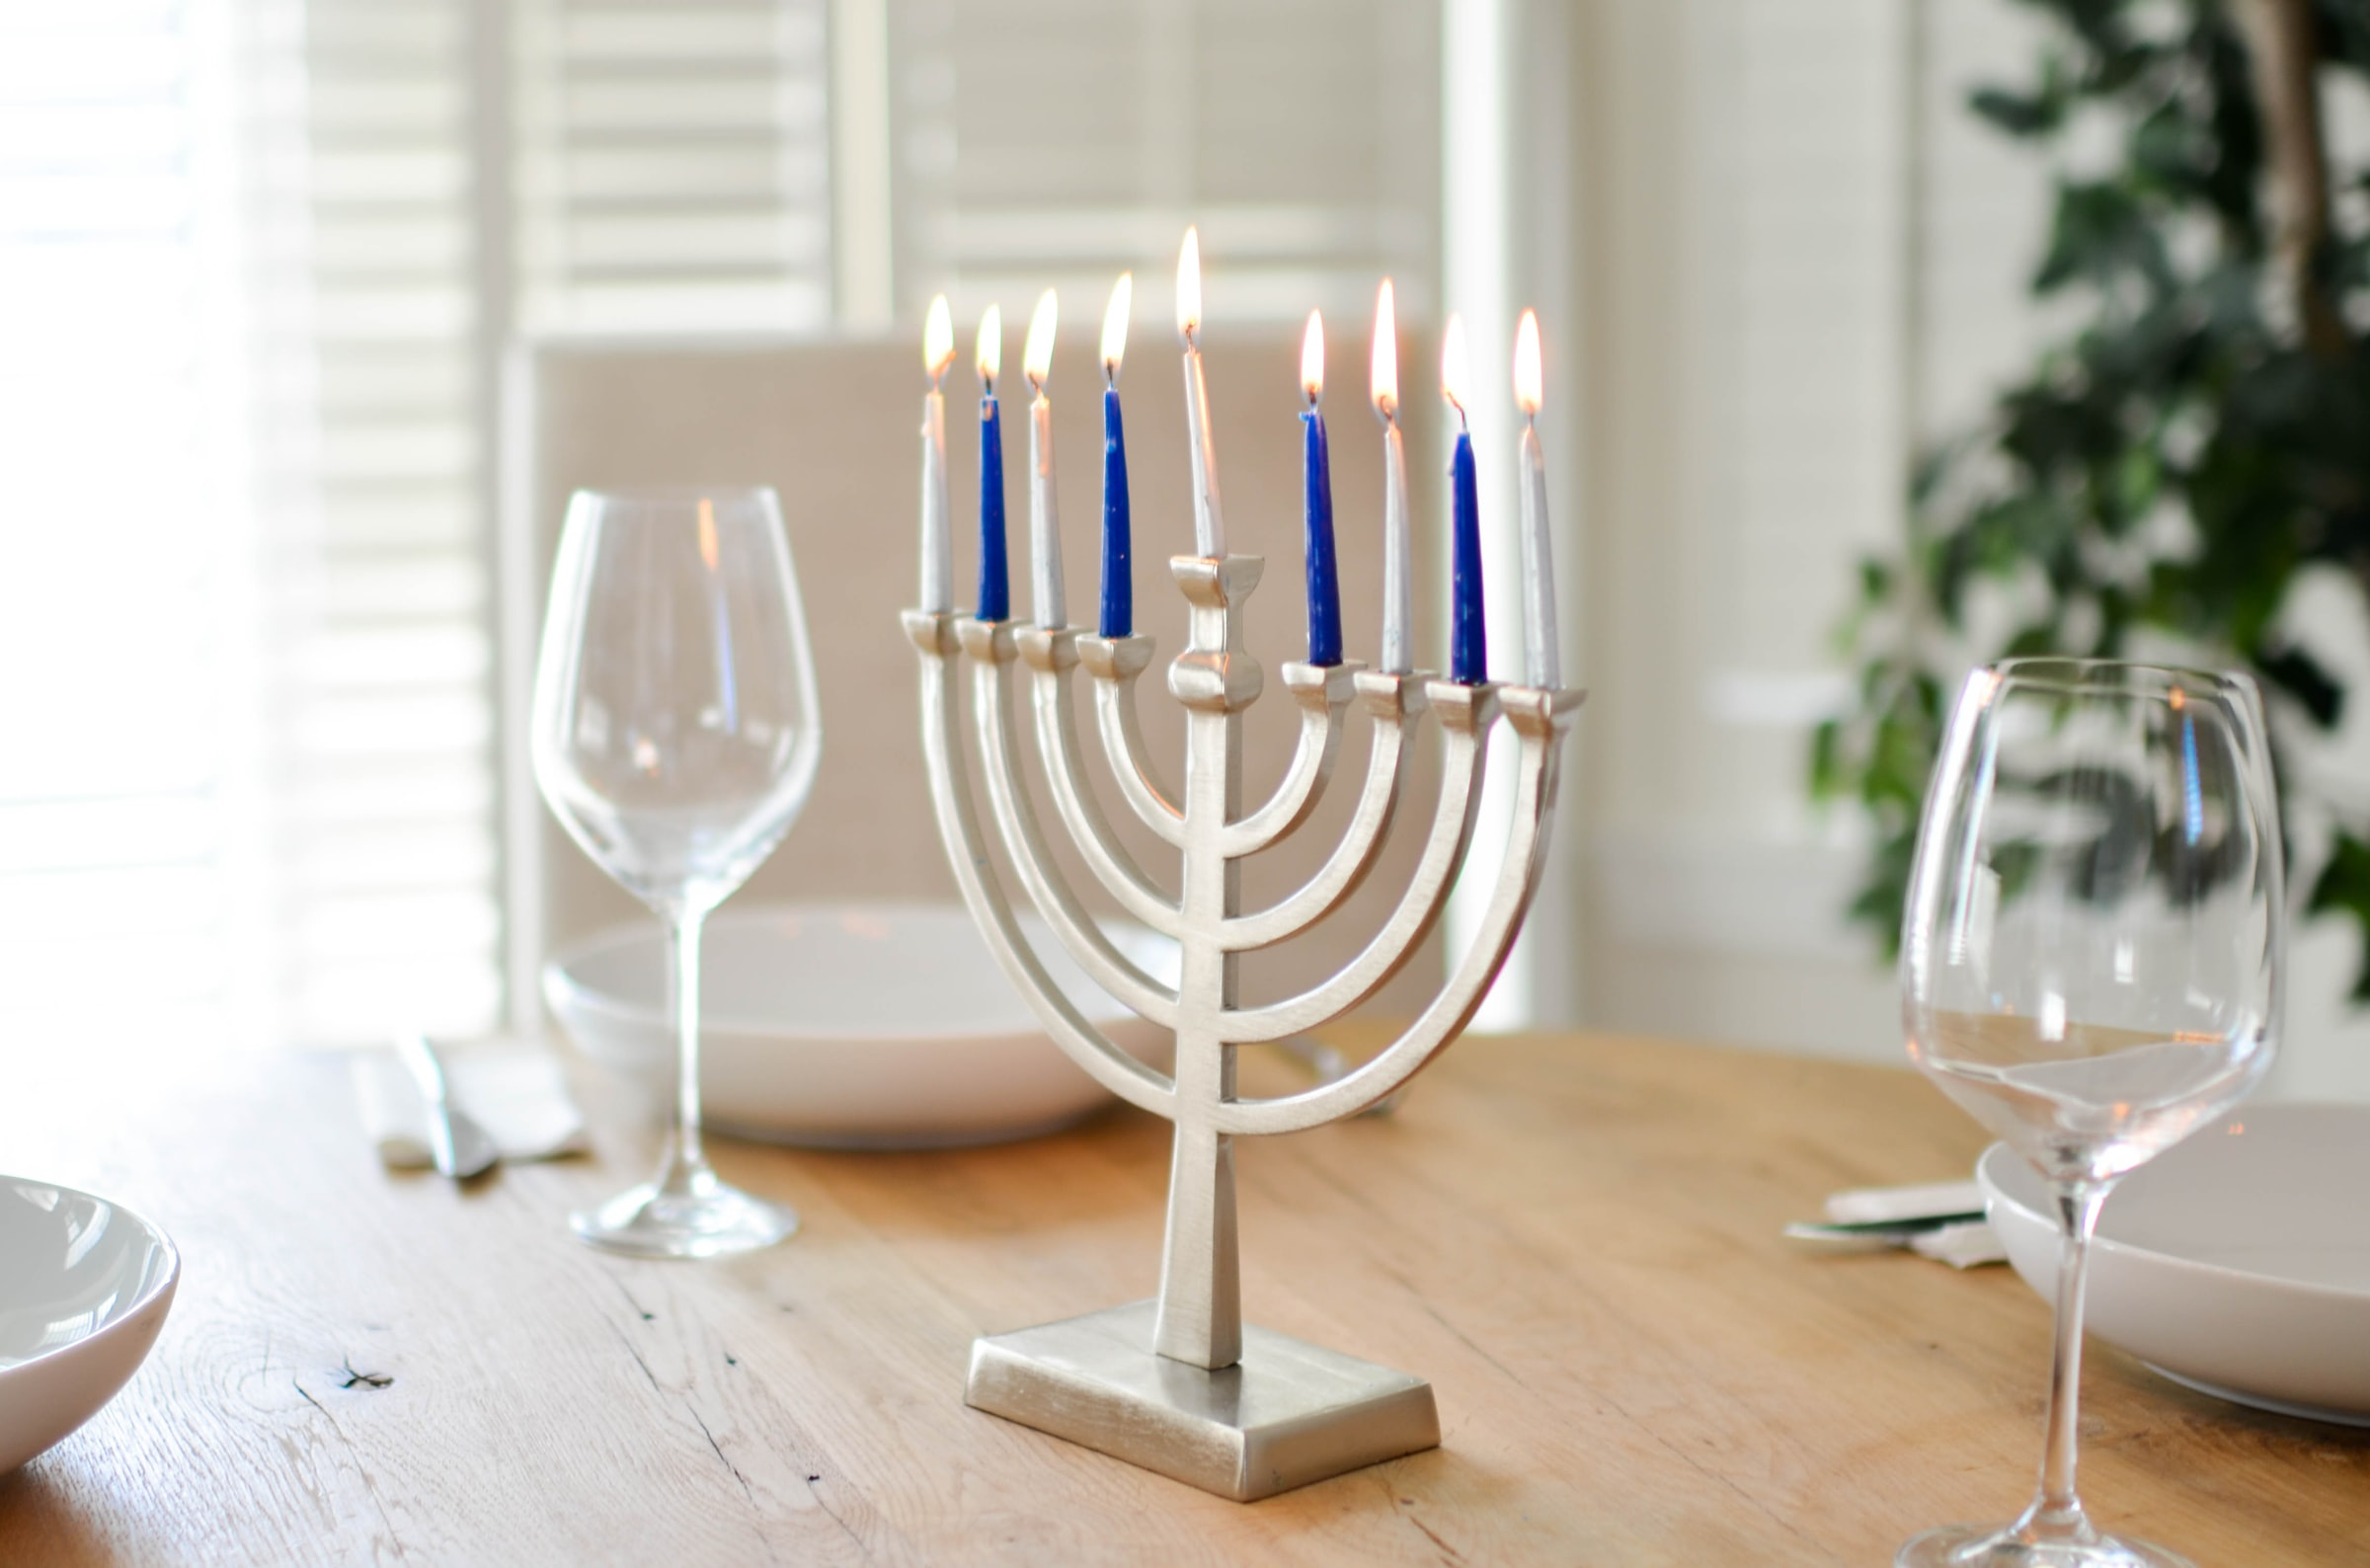 A traditional Hanukkah Menorah, also known as a Hannukkiah